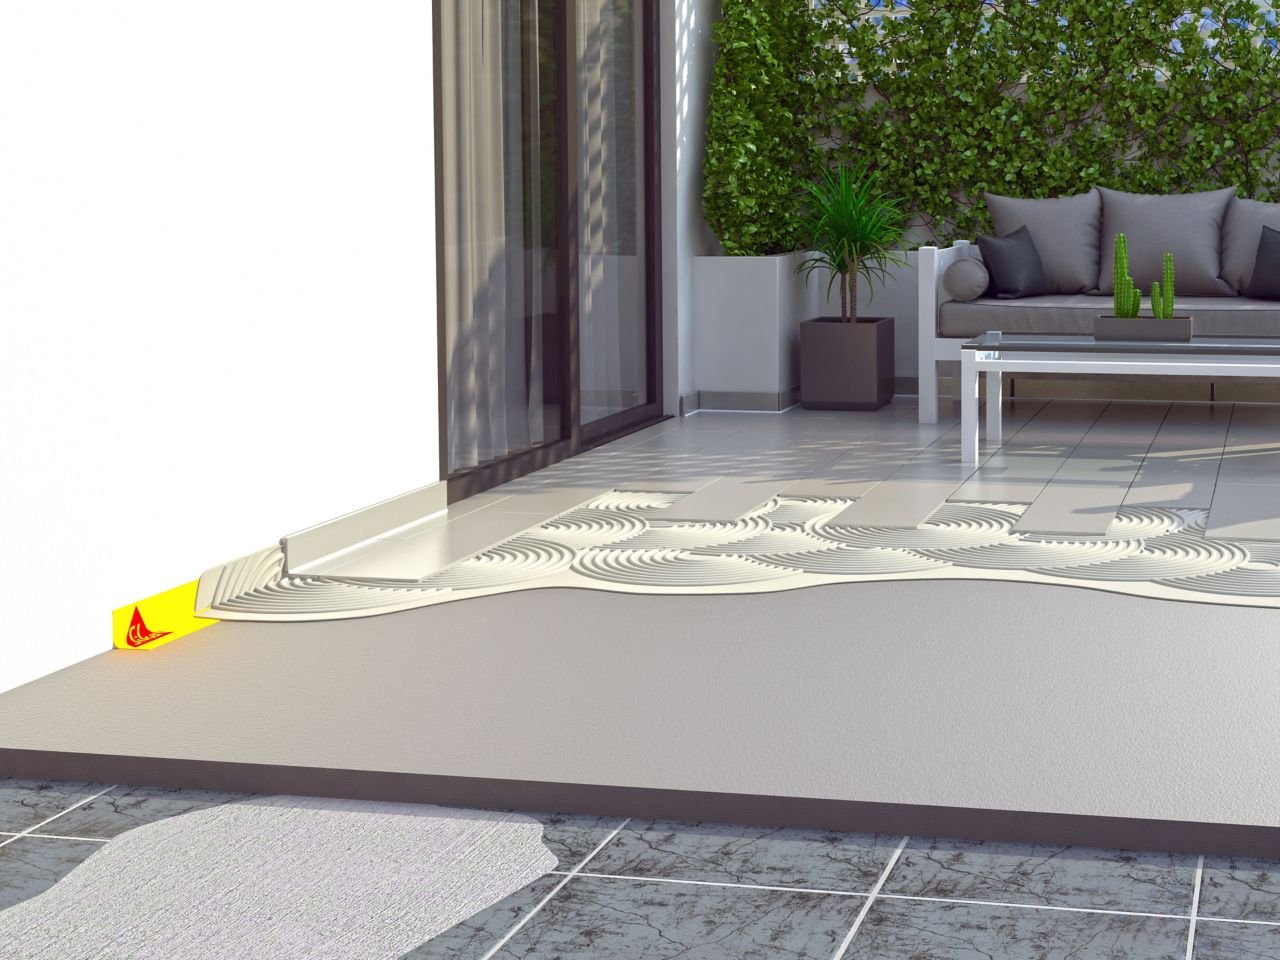 Illustration of tile setting adhesives and waterproofing tape for balcony terrace patio area outside home